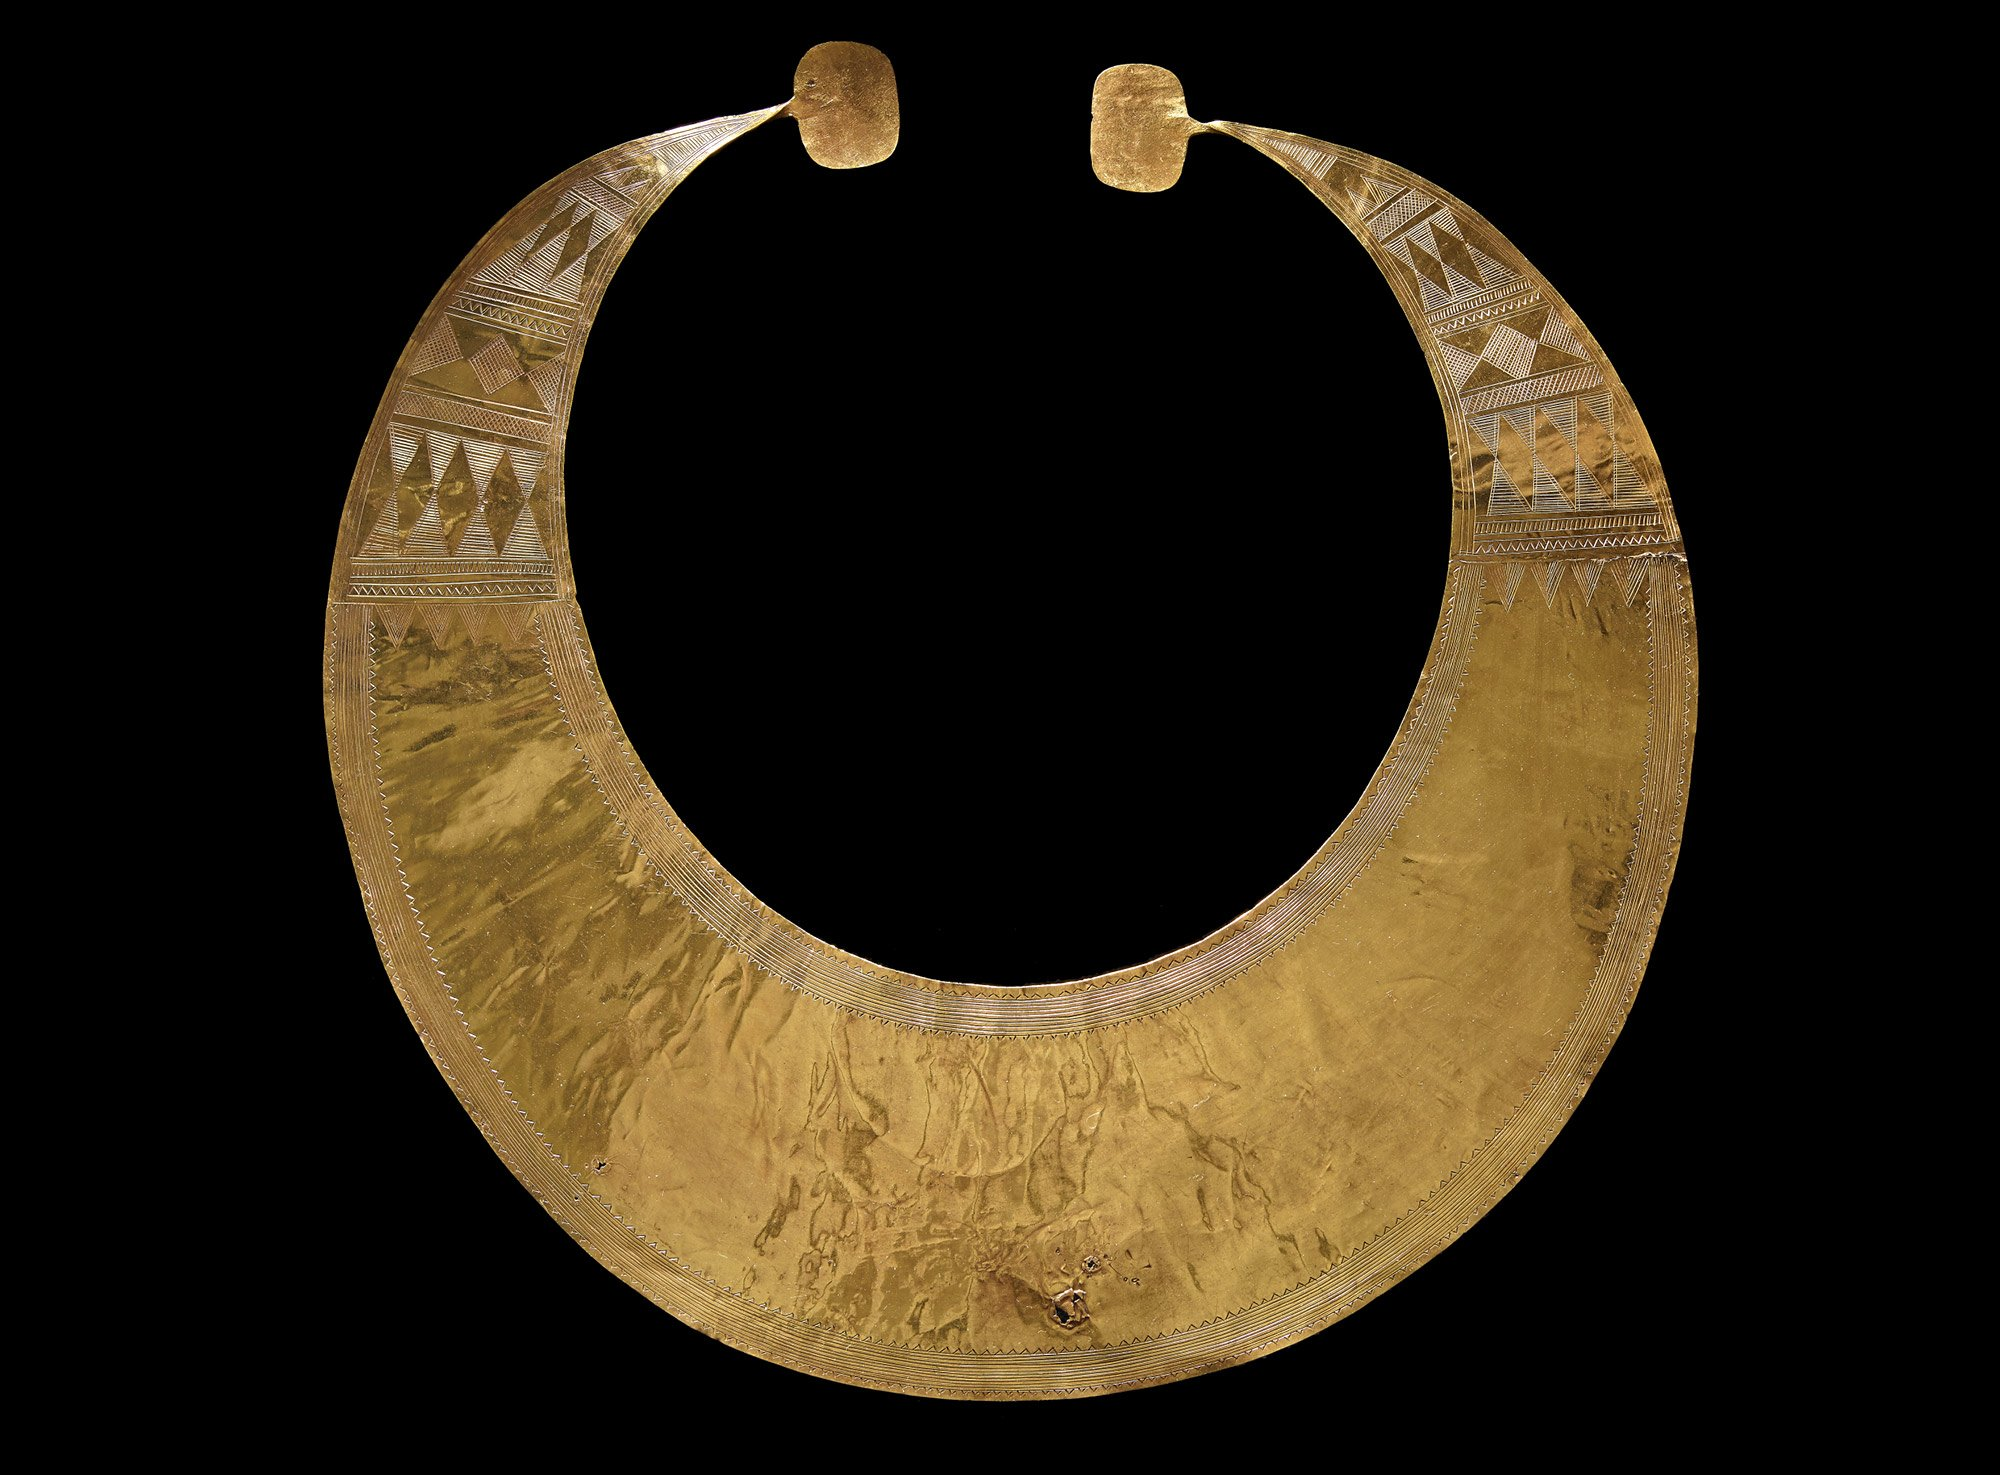 Lunula were worn around the neck, presumably by high status or special people. Their shape and decoration resembles amber and jet necklaces from this time